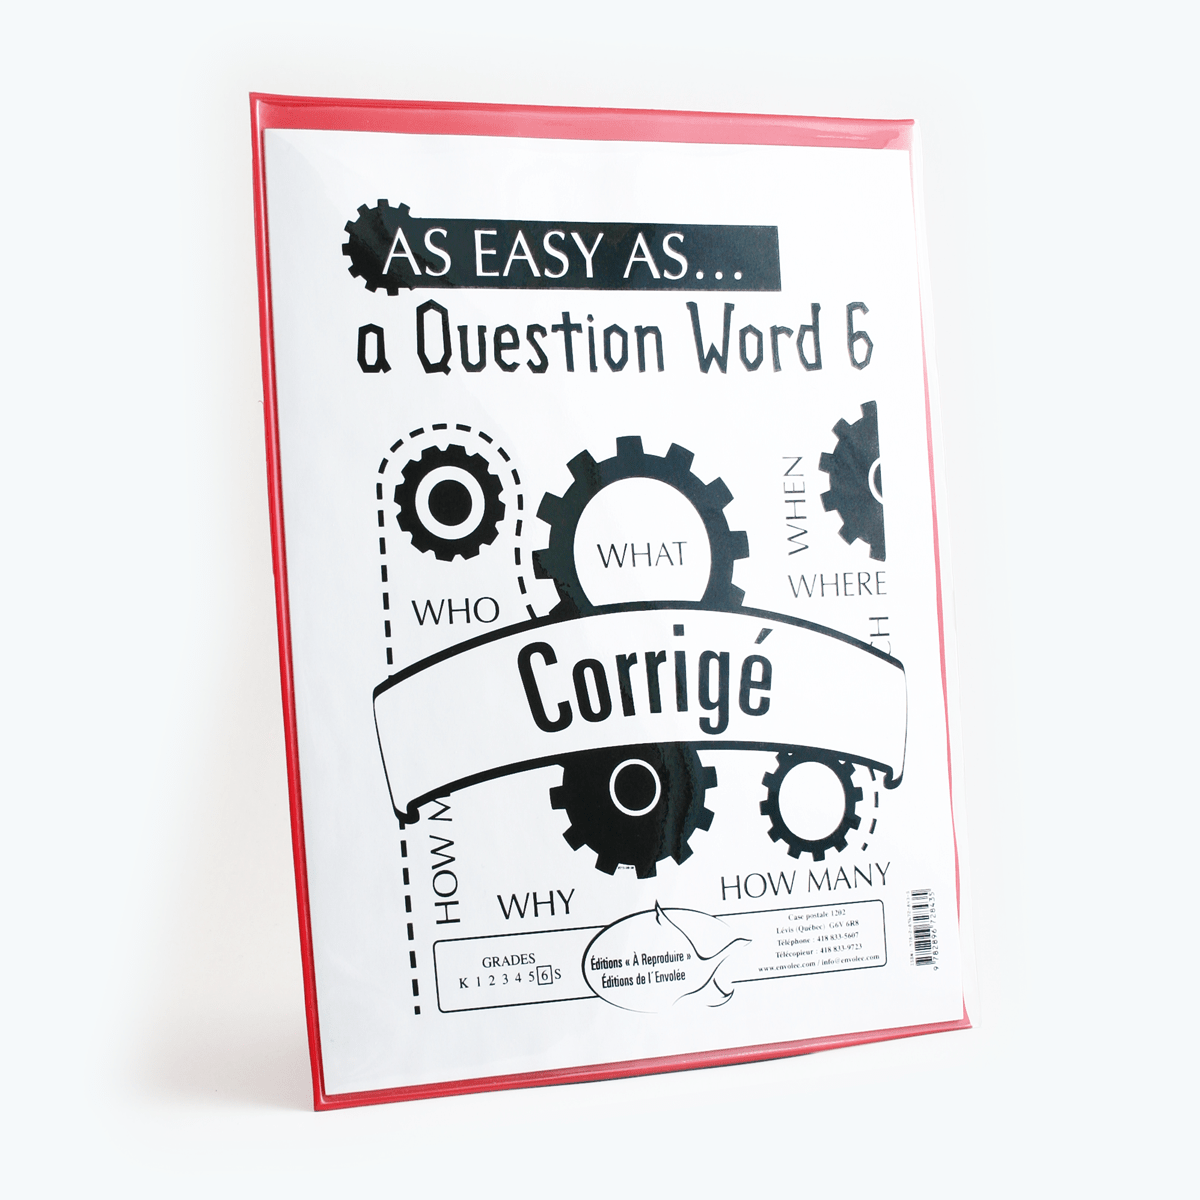 As Easy as... a Question Word 6